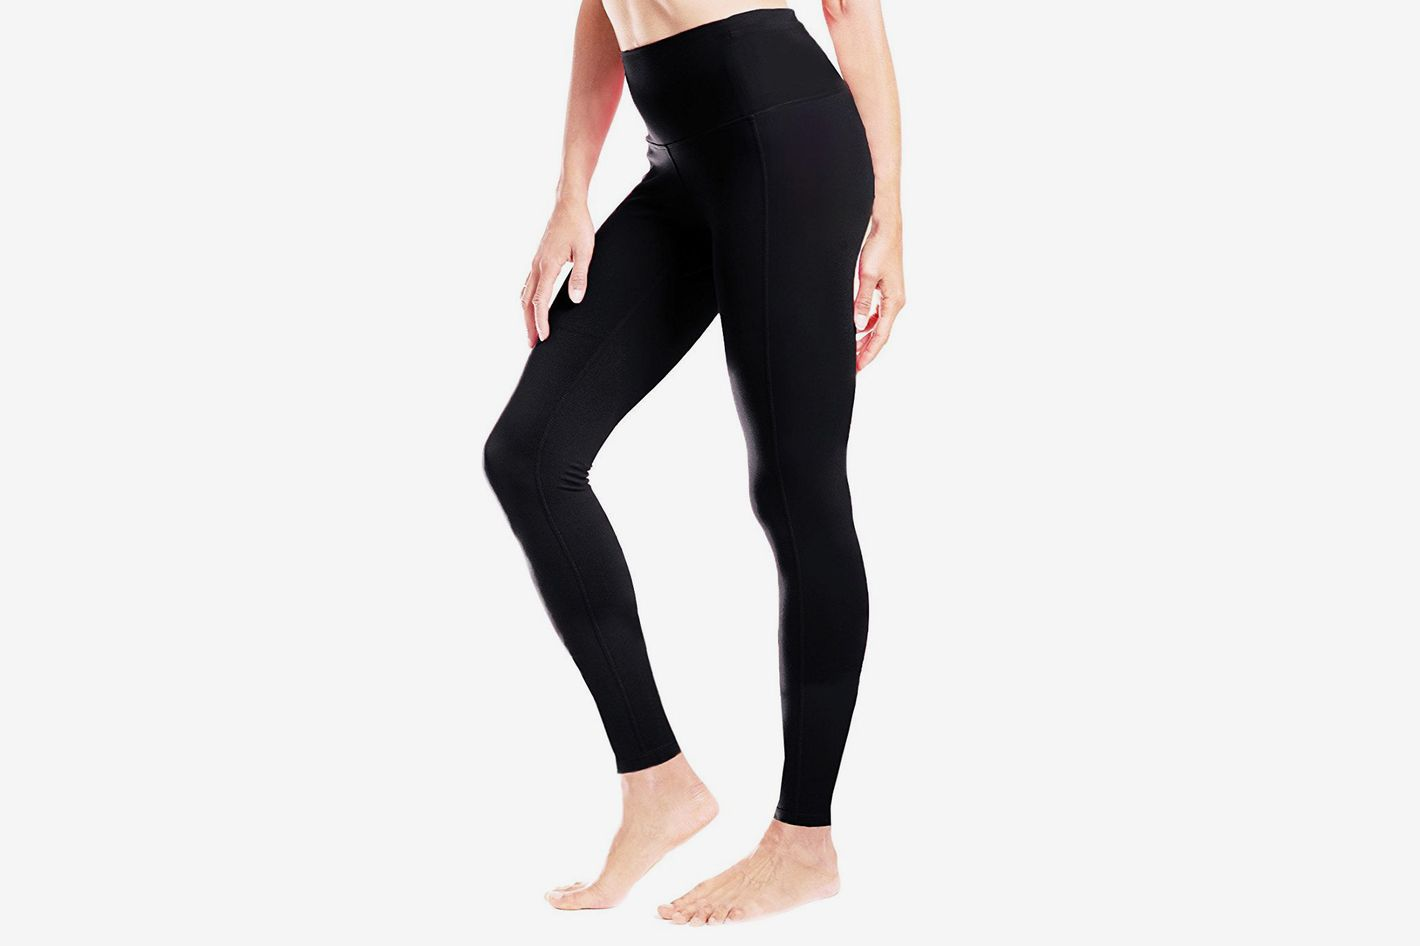 6cde853175d94 Yogipace Petite Length High Waisted Yoga Leggings